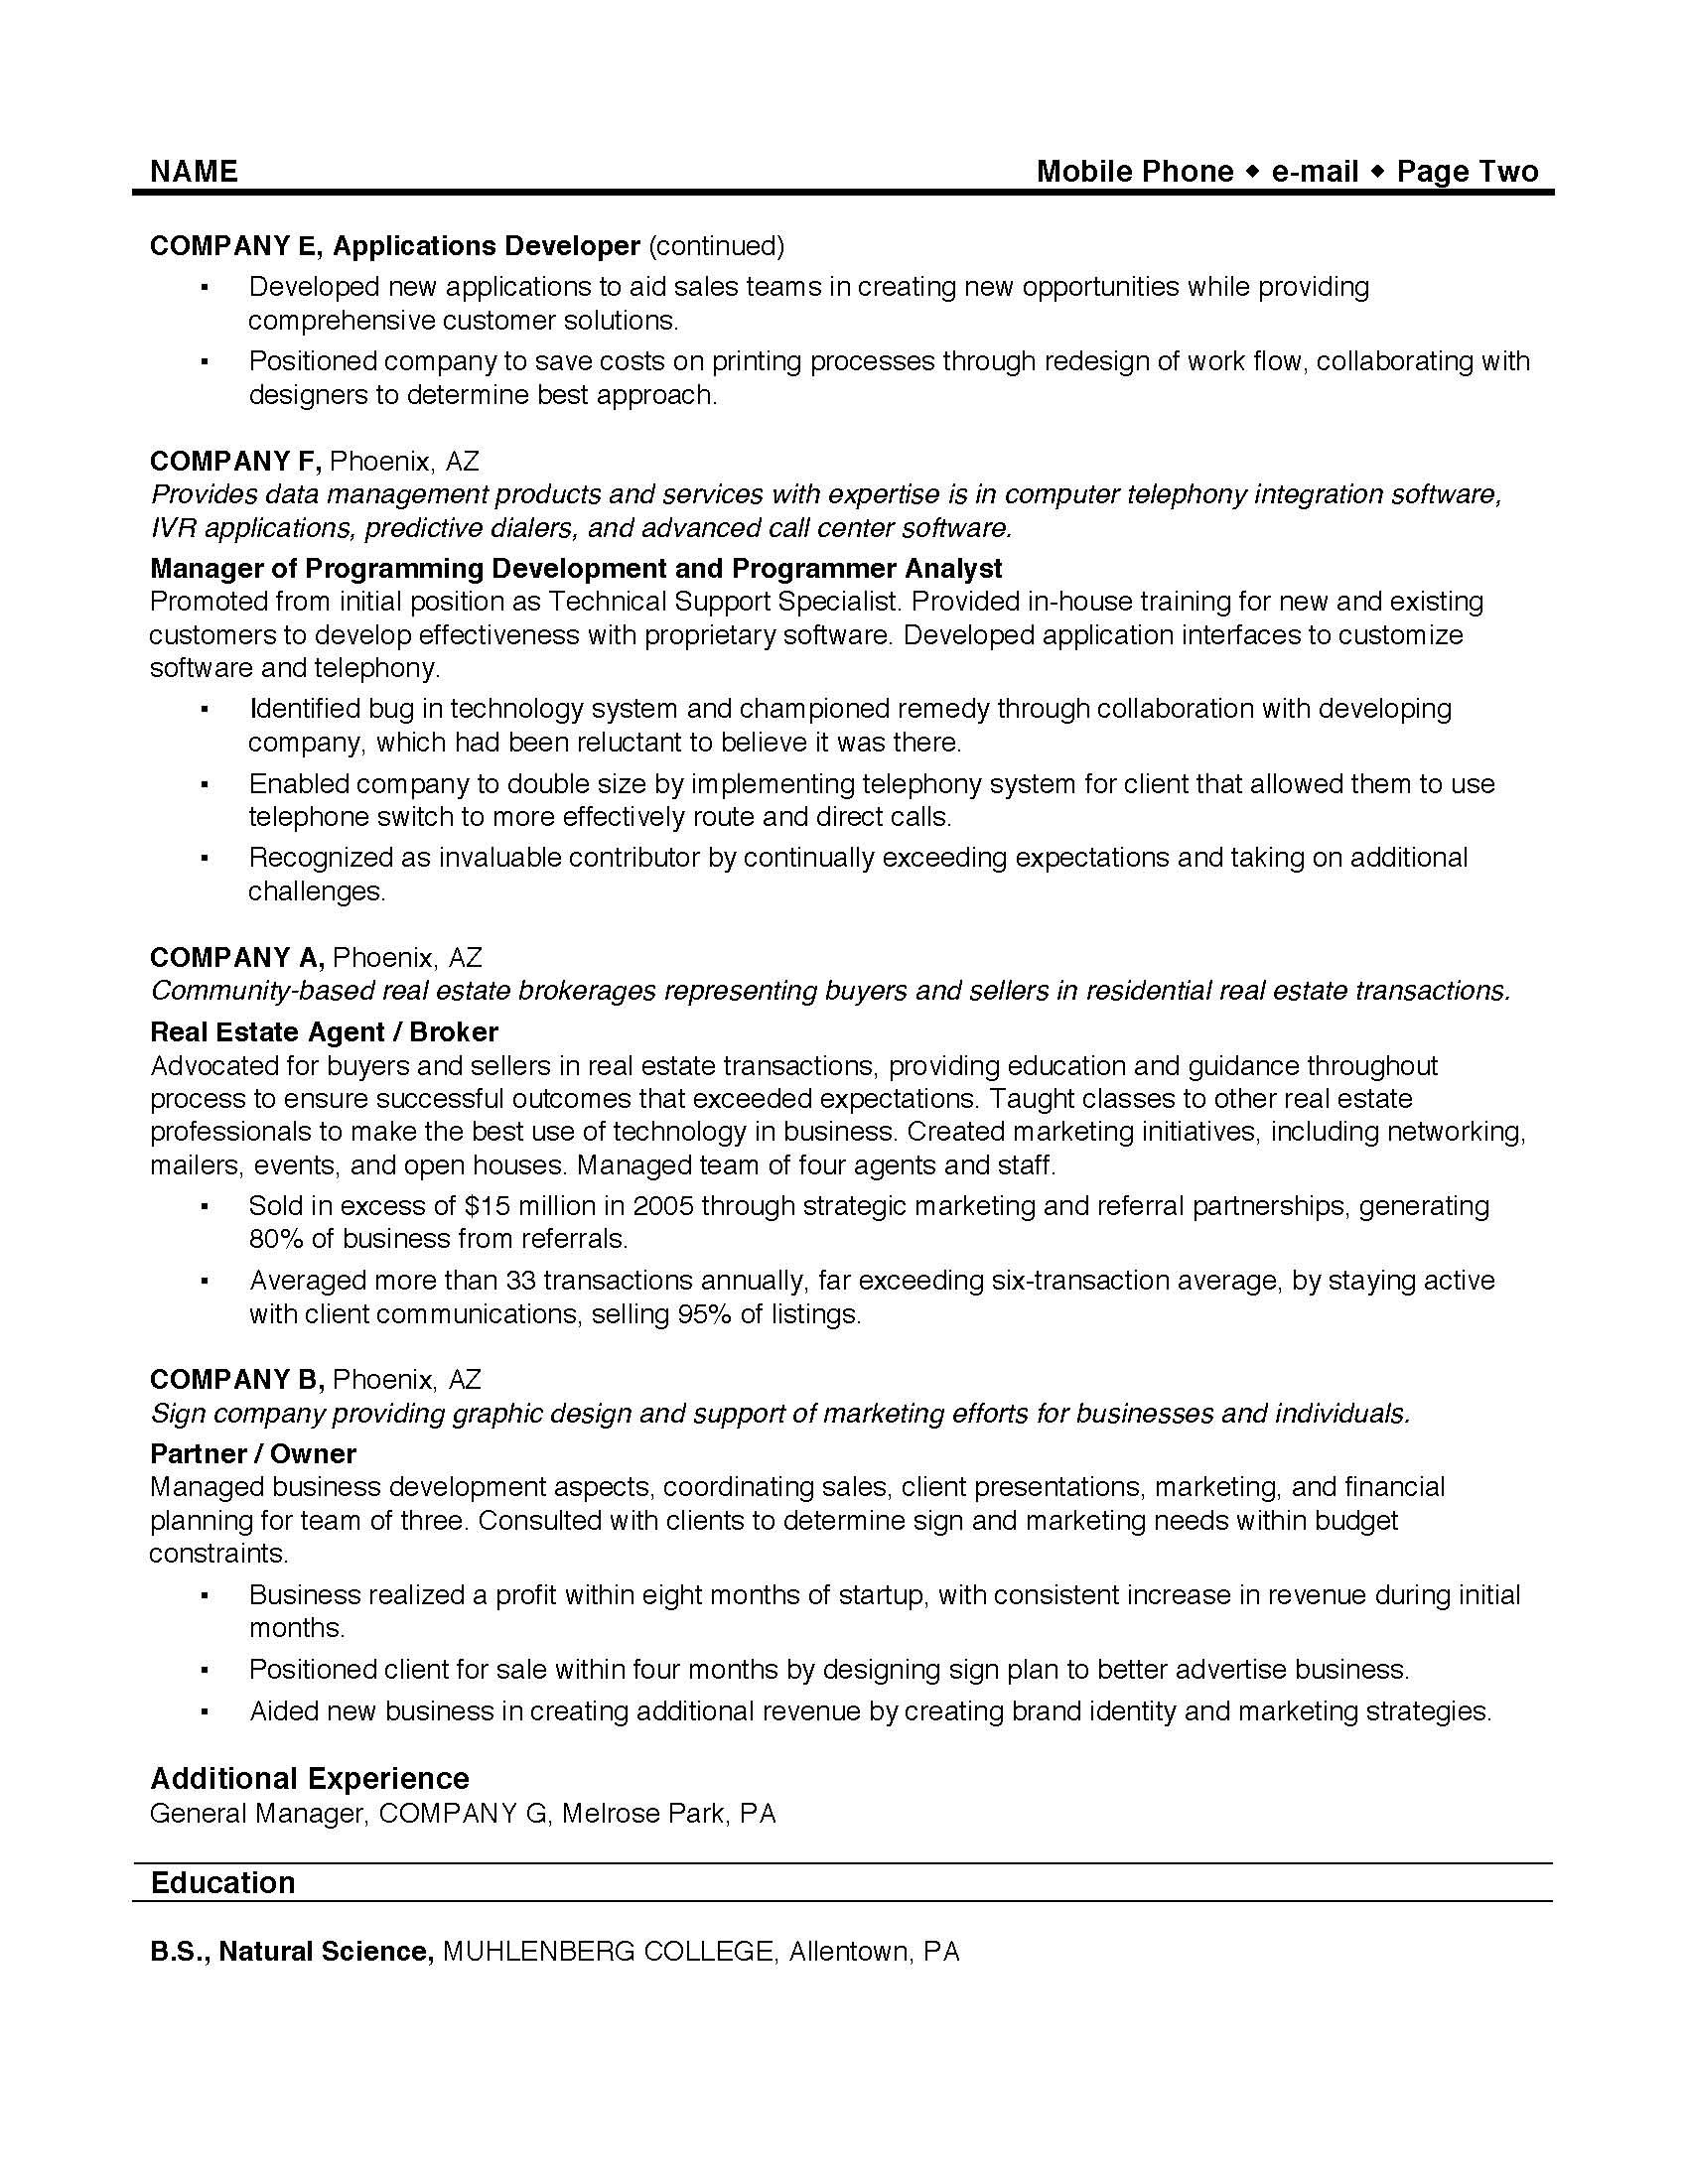 Marketing Resume Example Pics Photos Sample College Student Resume Examples Samples Resumes